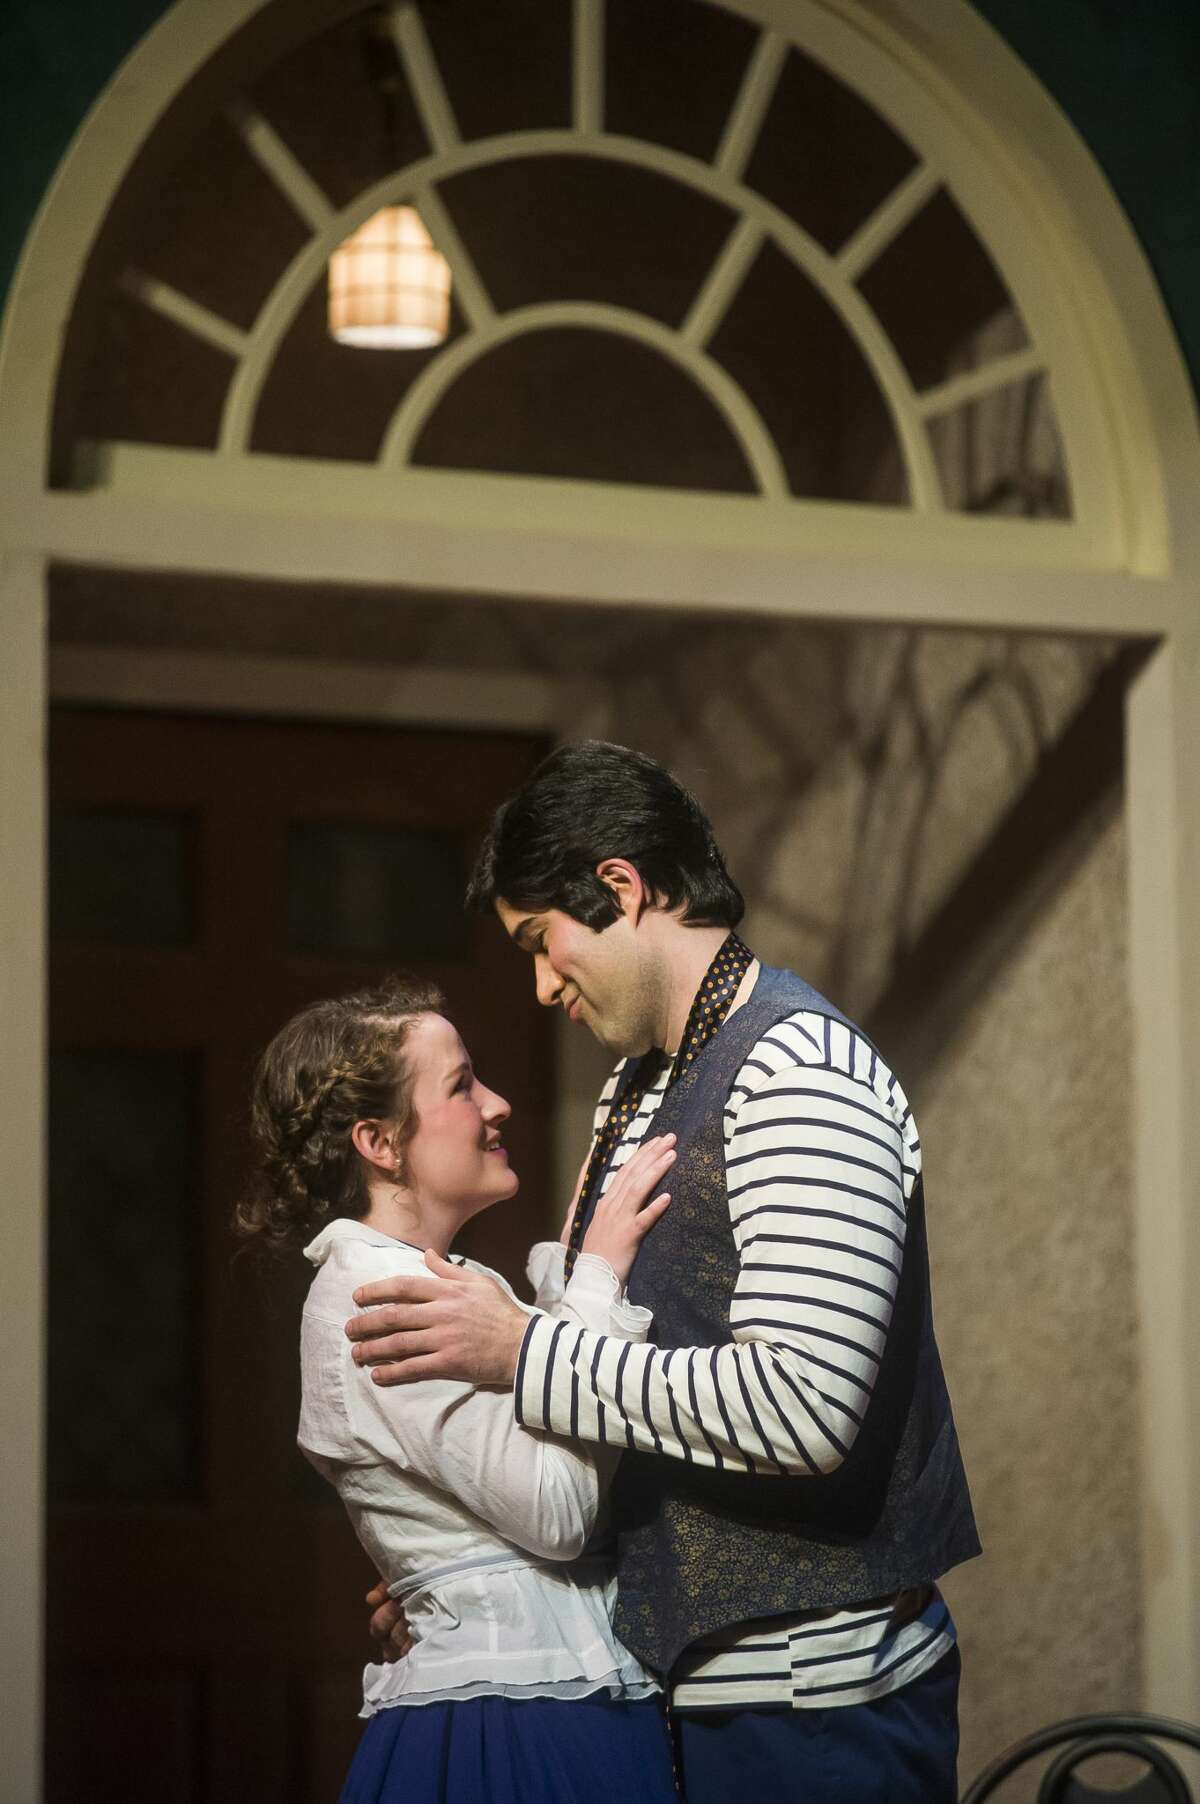 """Madeline Vallazza in the role of Suzanne, left, and Stephen Fort in the role of Picasso, right, act out a scene during a dress rehearsal Tuesday, Jan. 7, 2020 for Center Stage Theatre's production of """"Picasso at the Lapin Agile"""" at Midland Center for the Arts. (Katy Kildee/kkildee@mdn.net)"""